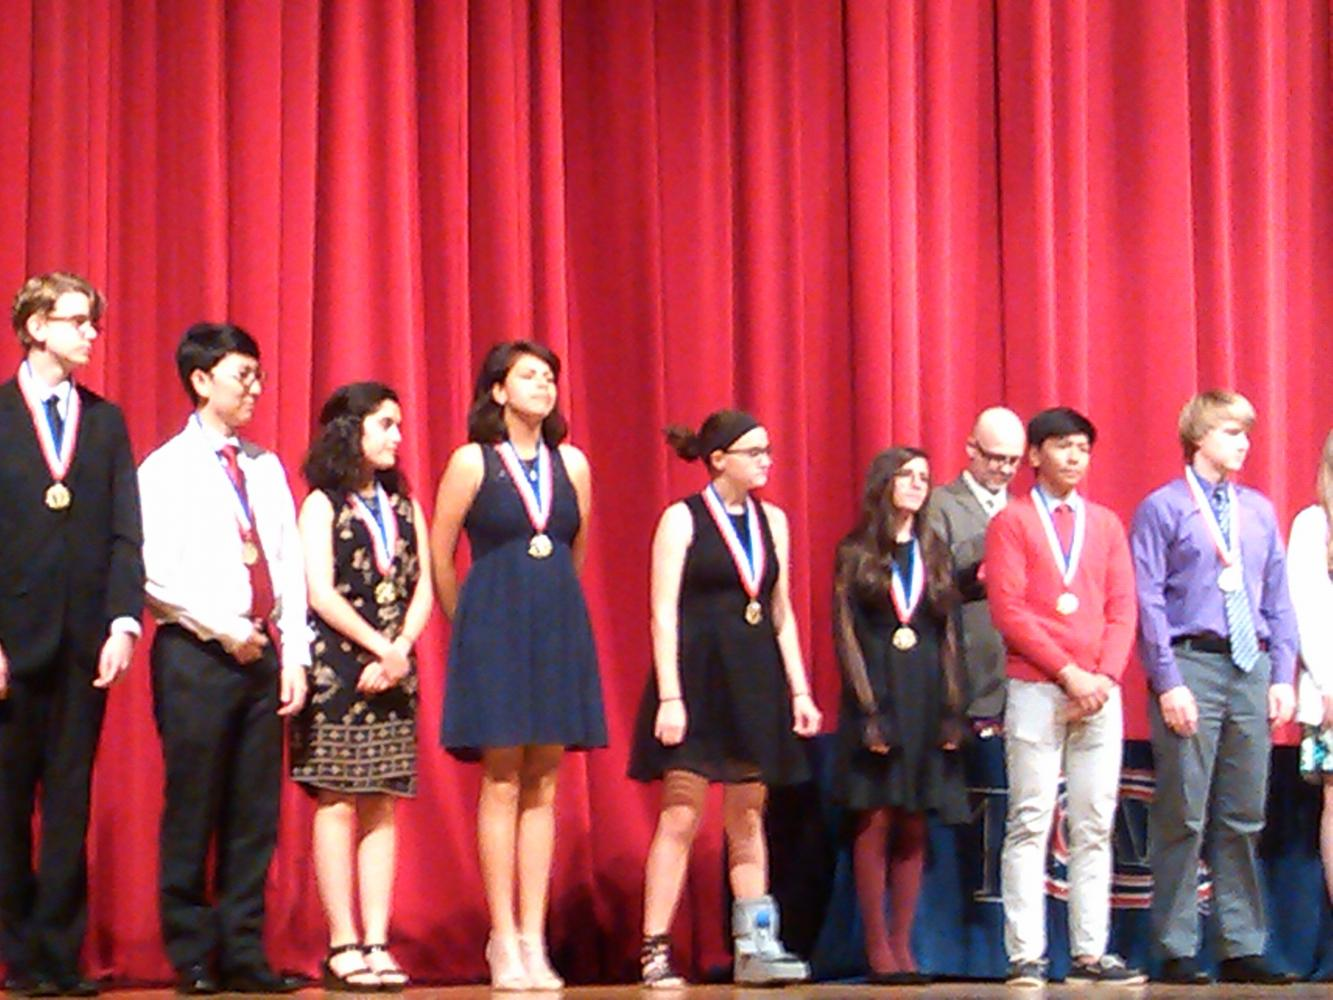 Students honored on stage at the awards ceremony.